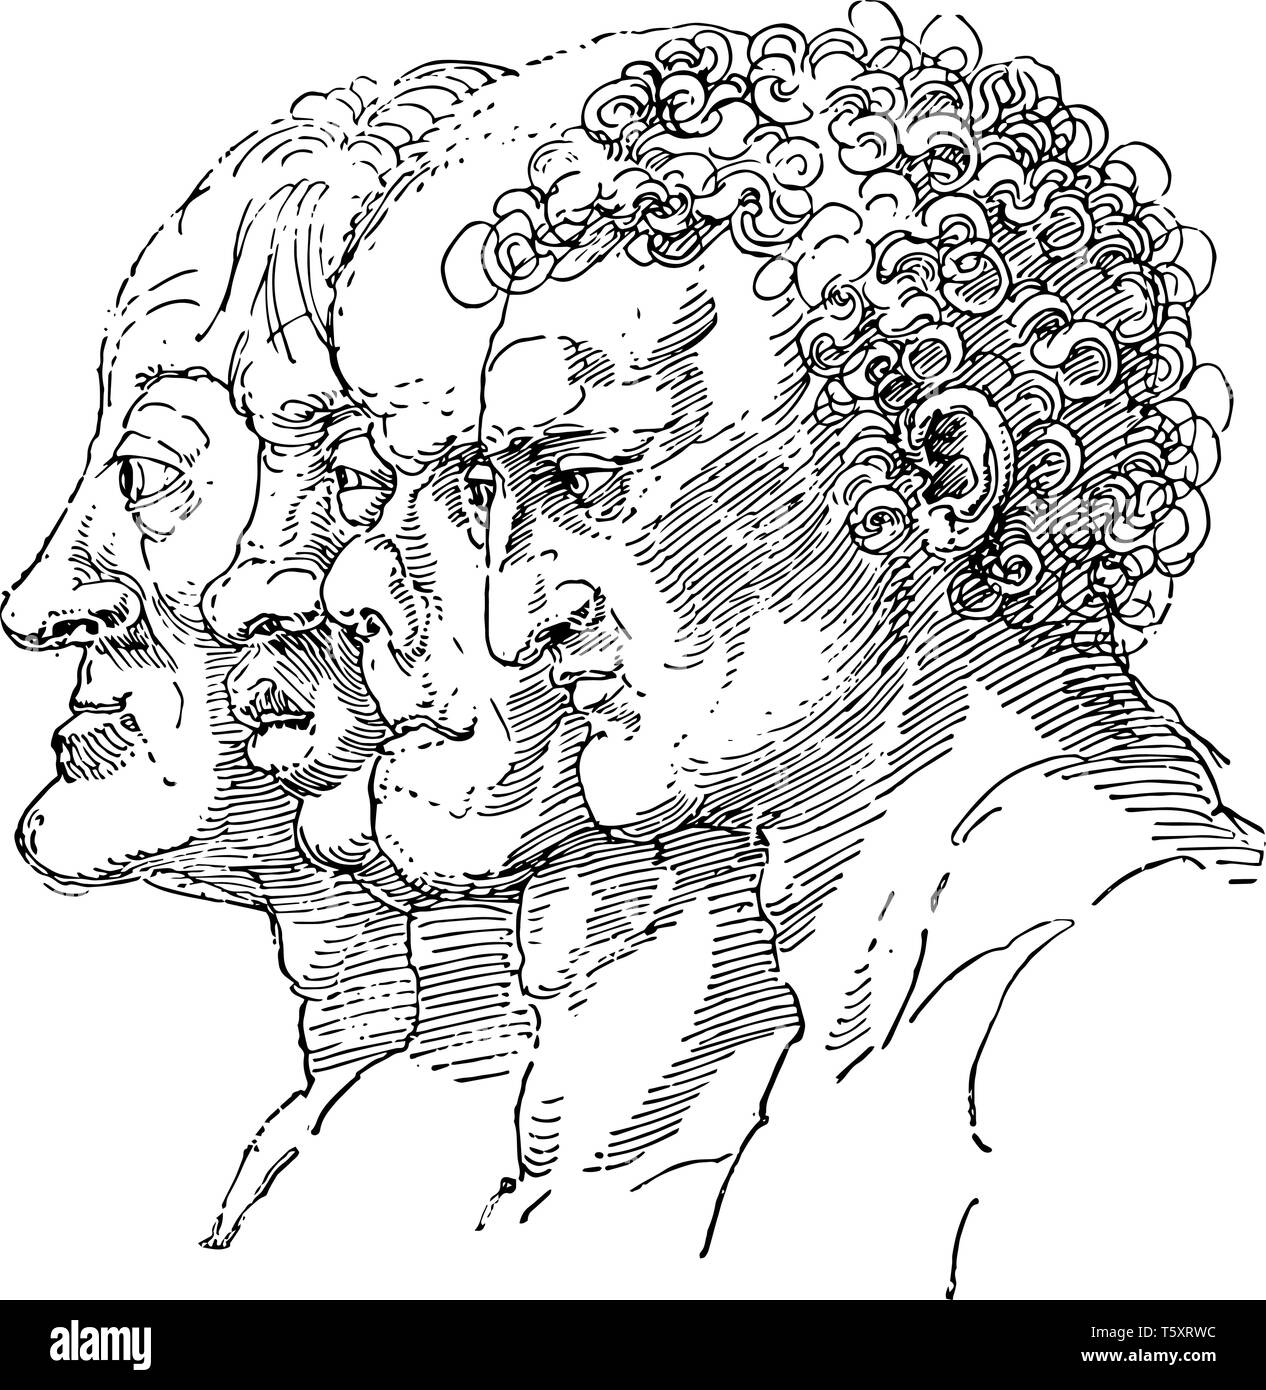 Study of the Varieties of Facial Types by German artist Albrecht Dürer, personality from a person's outer appearance, central in the expression of emo - Stock Vector